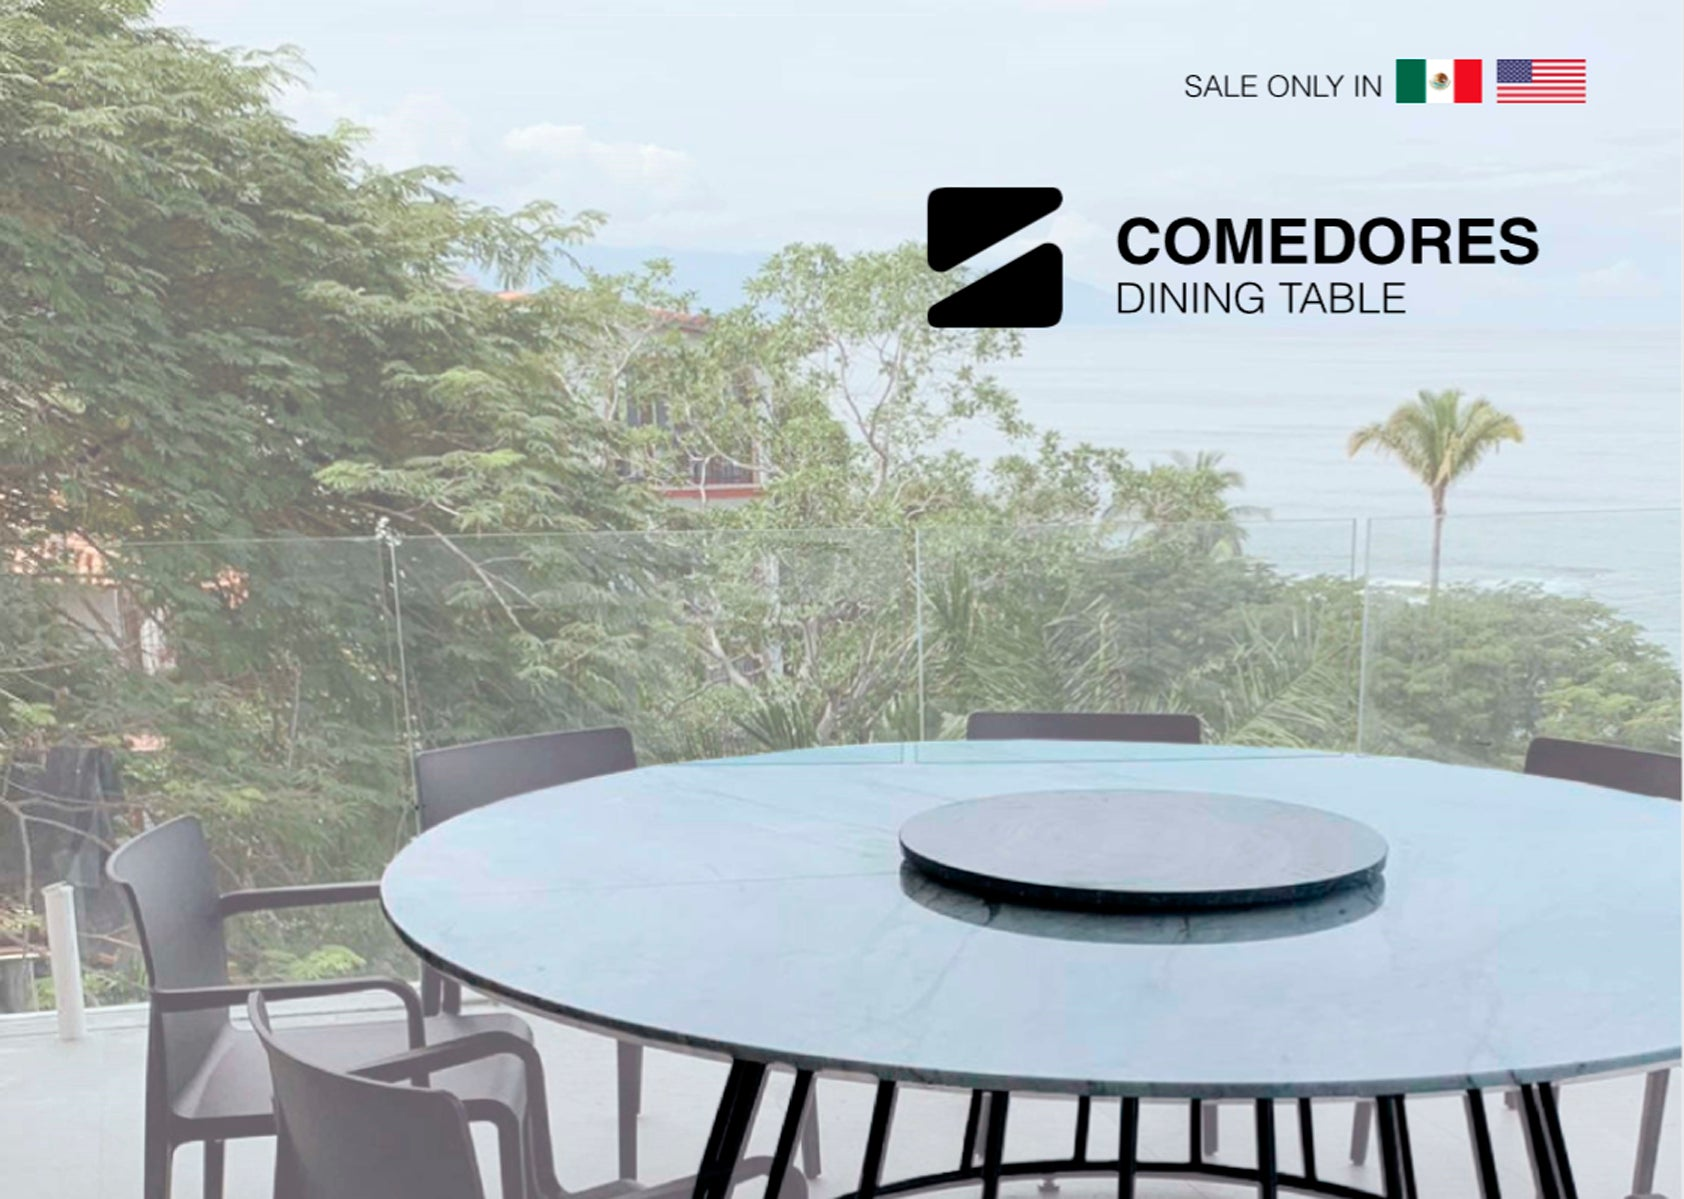 COMEDORES // DINING TABLE